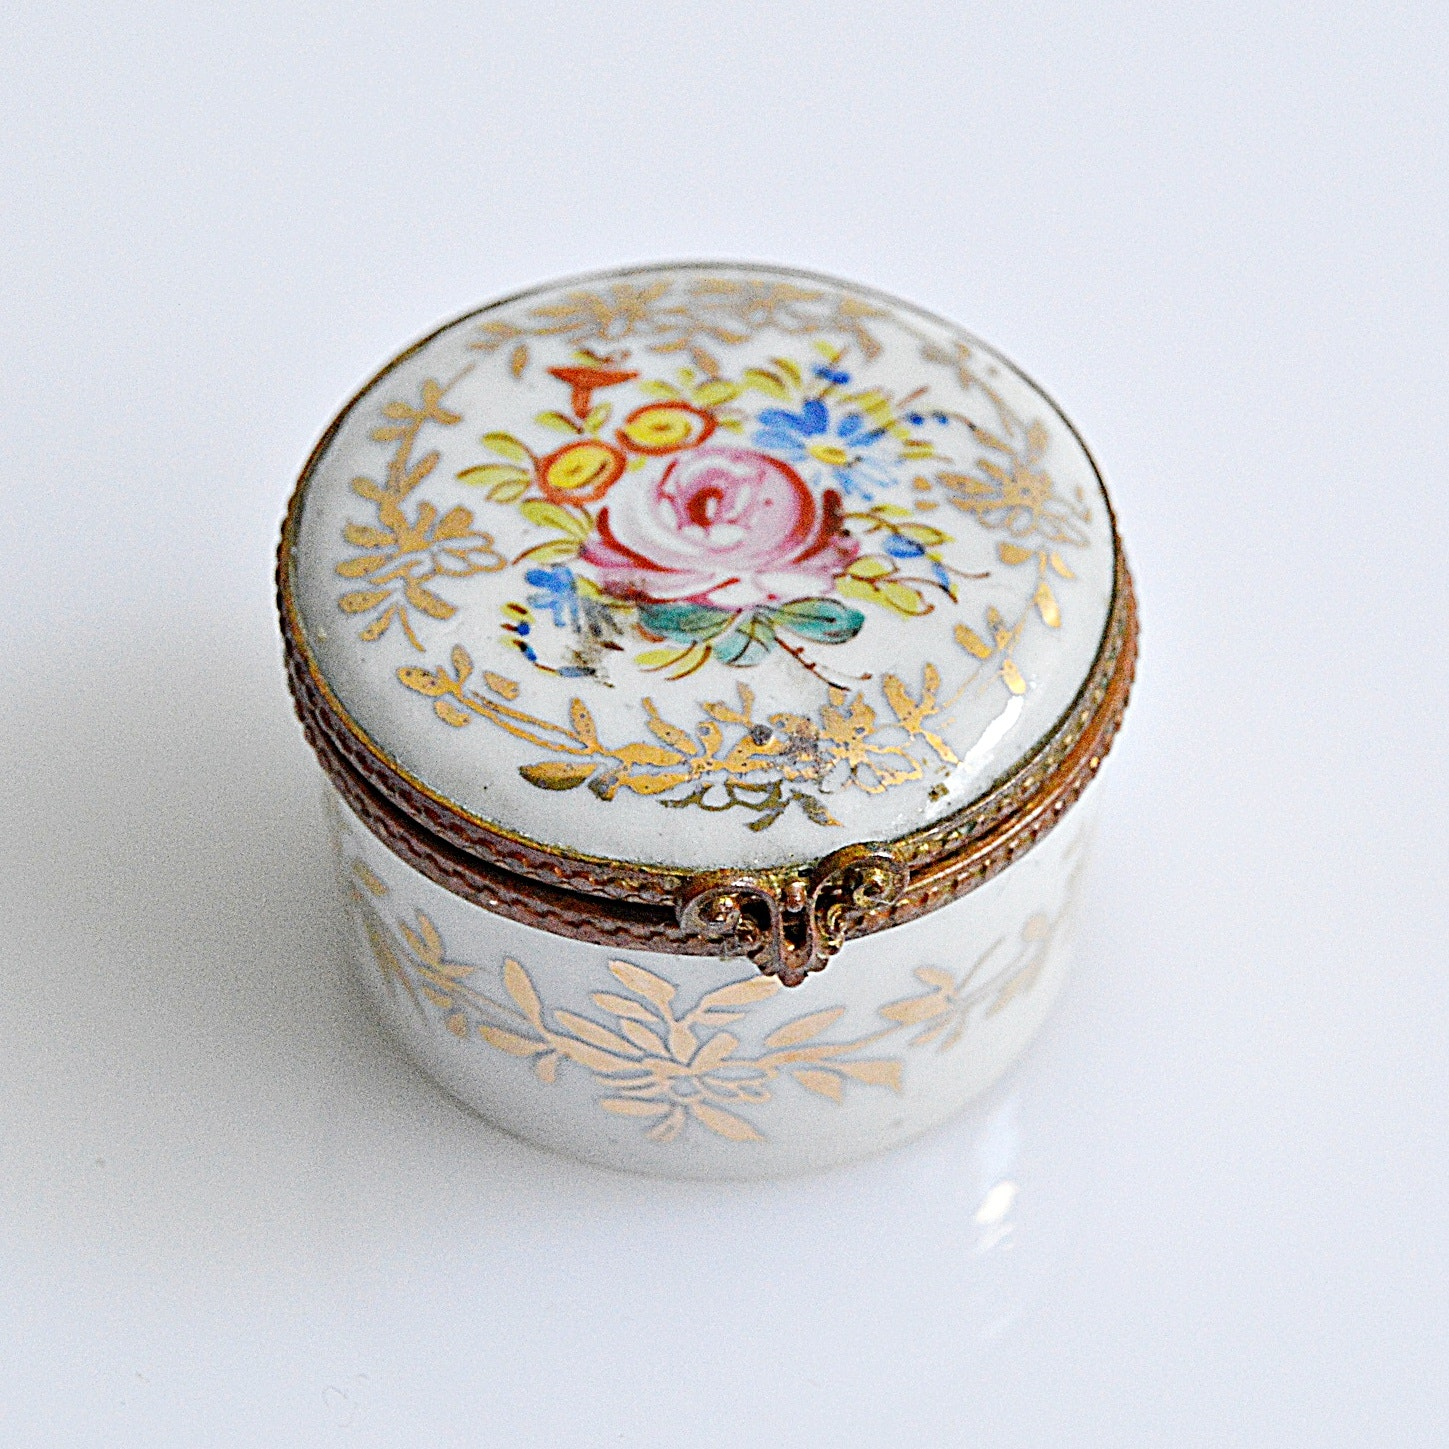 Antique French Porcelain Snuff Box